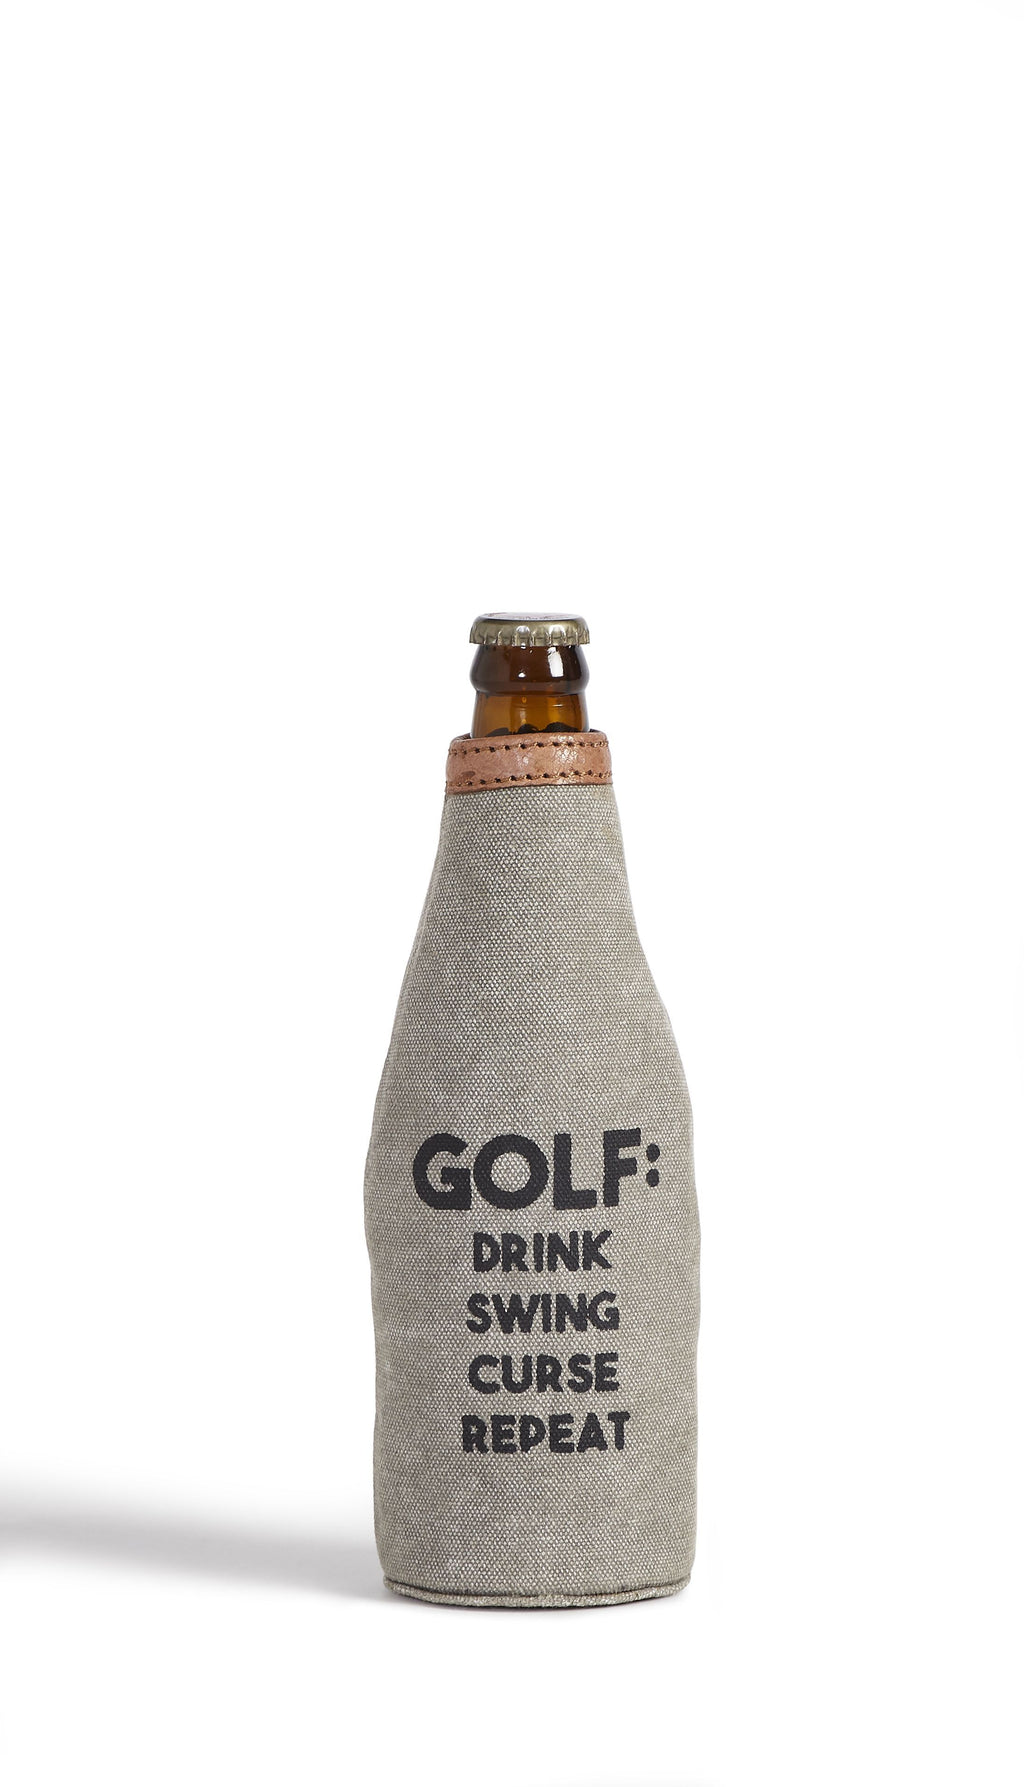 Swing, Curse, Repeat - Bottle Koozie